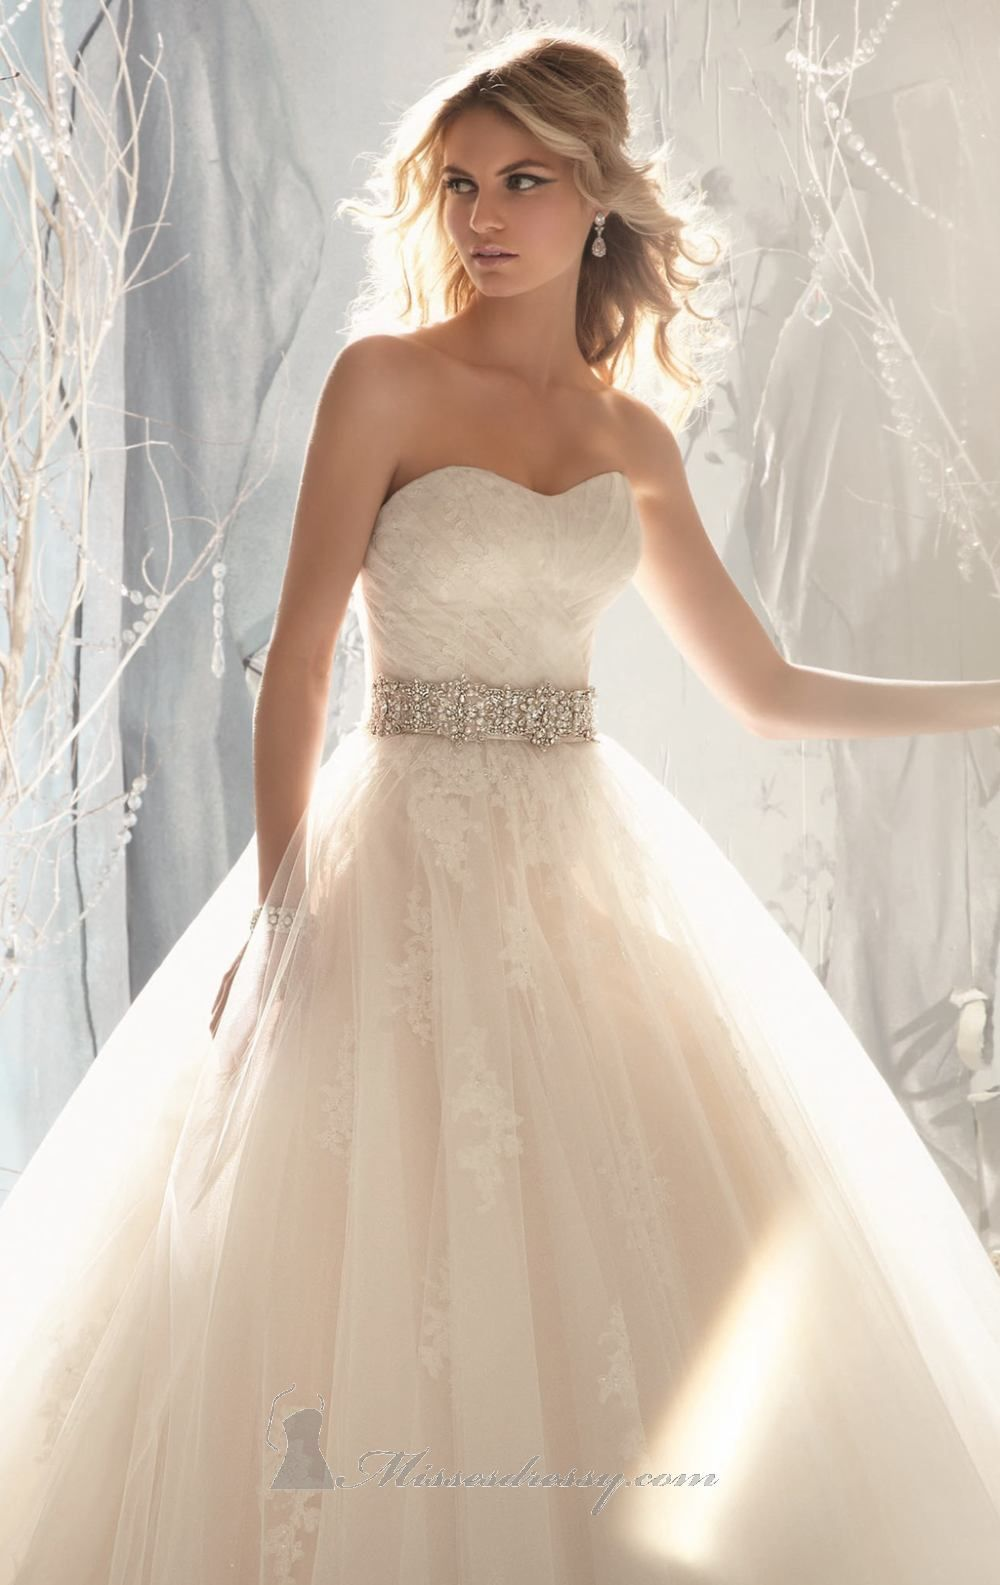 Mori Lee 1959 Dress - This full skirt wedding gown is made of ...